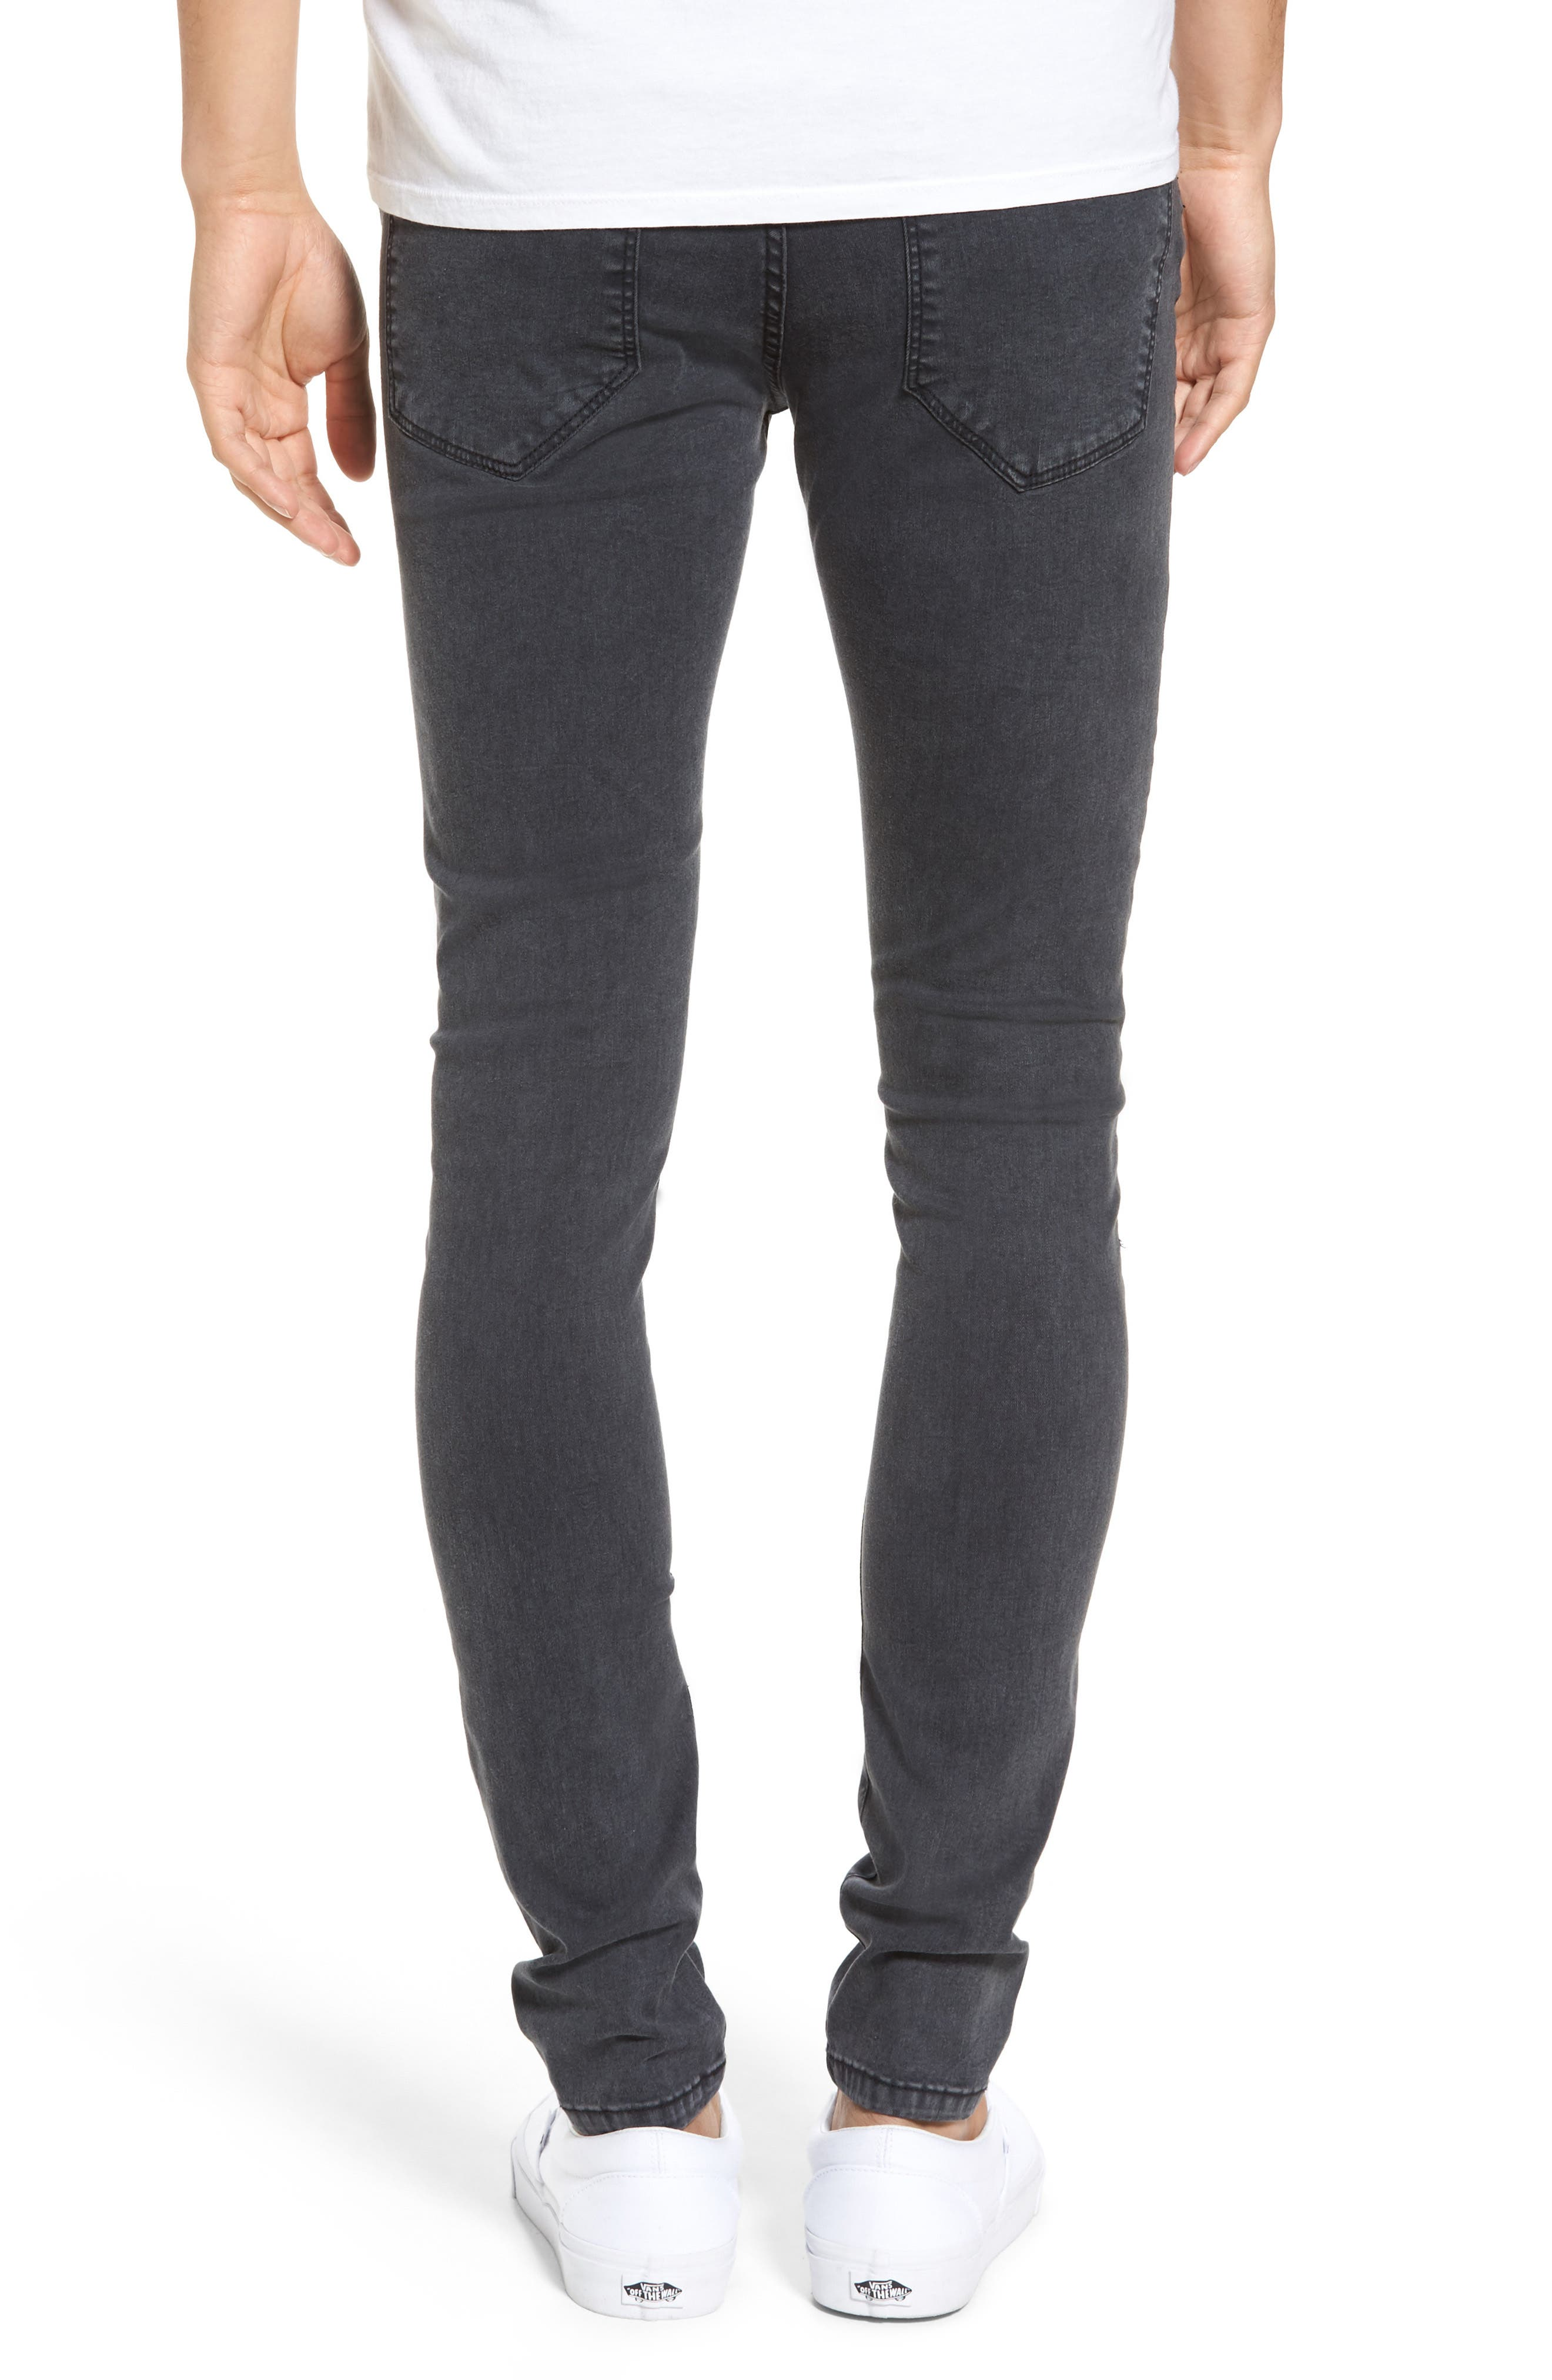 Leroy Slim Fit Jeans,                             Alternate thumbnail 2, color,                             Grey Lush